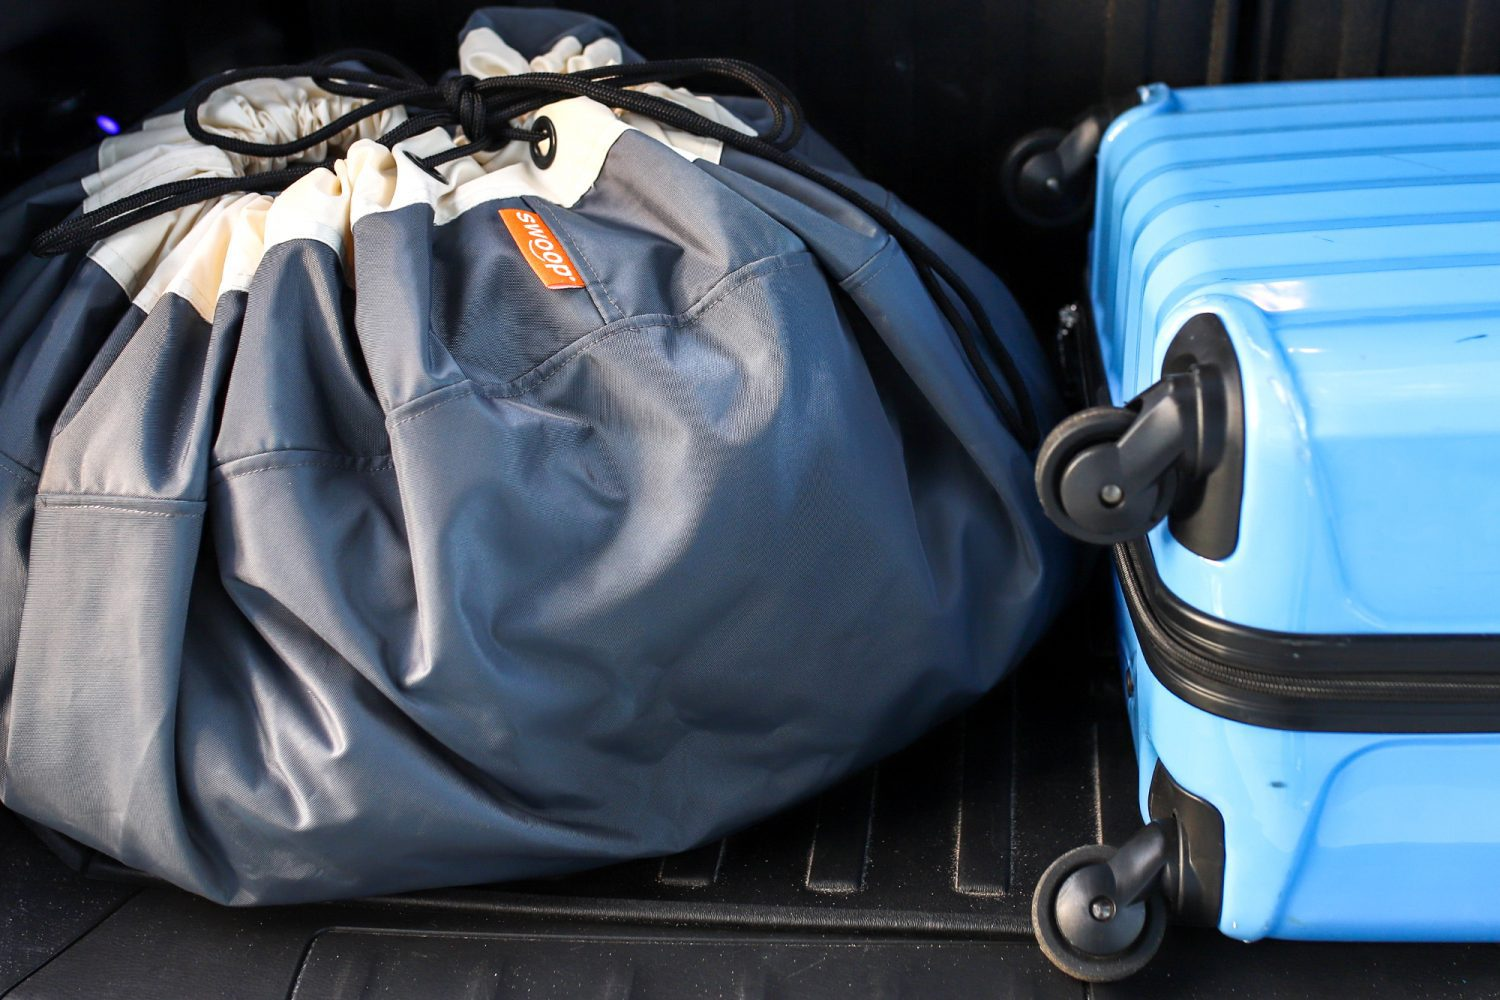 swoop bag and a suitcase in the back of a car